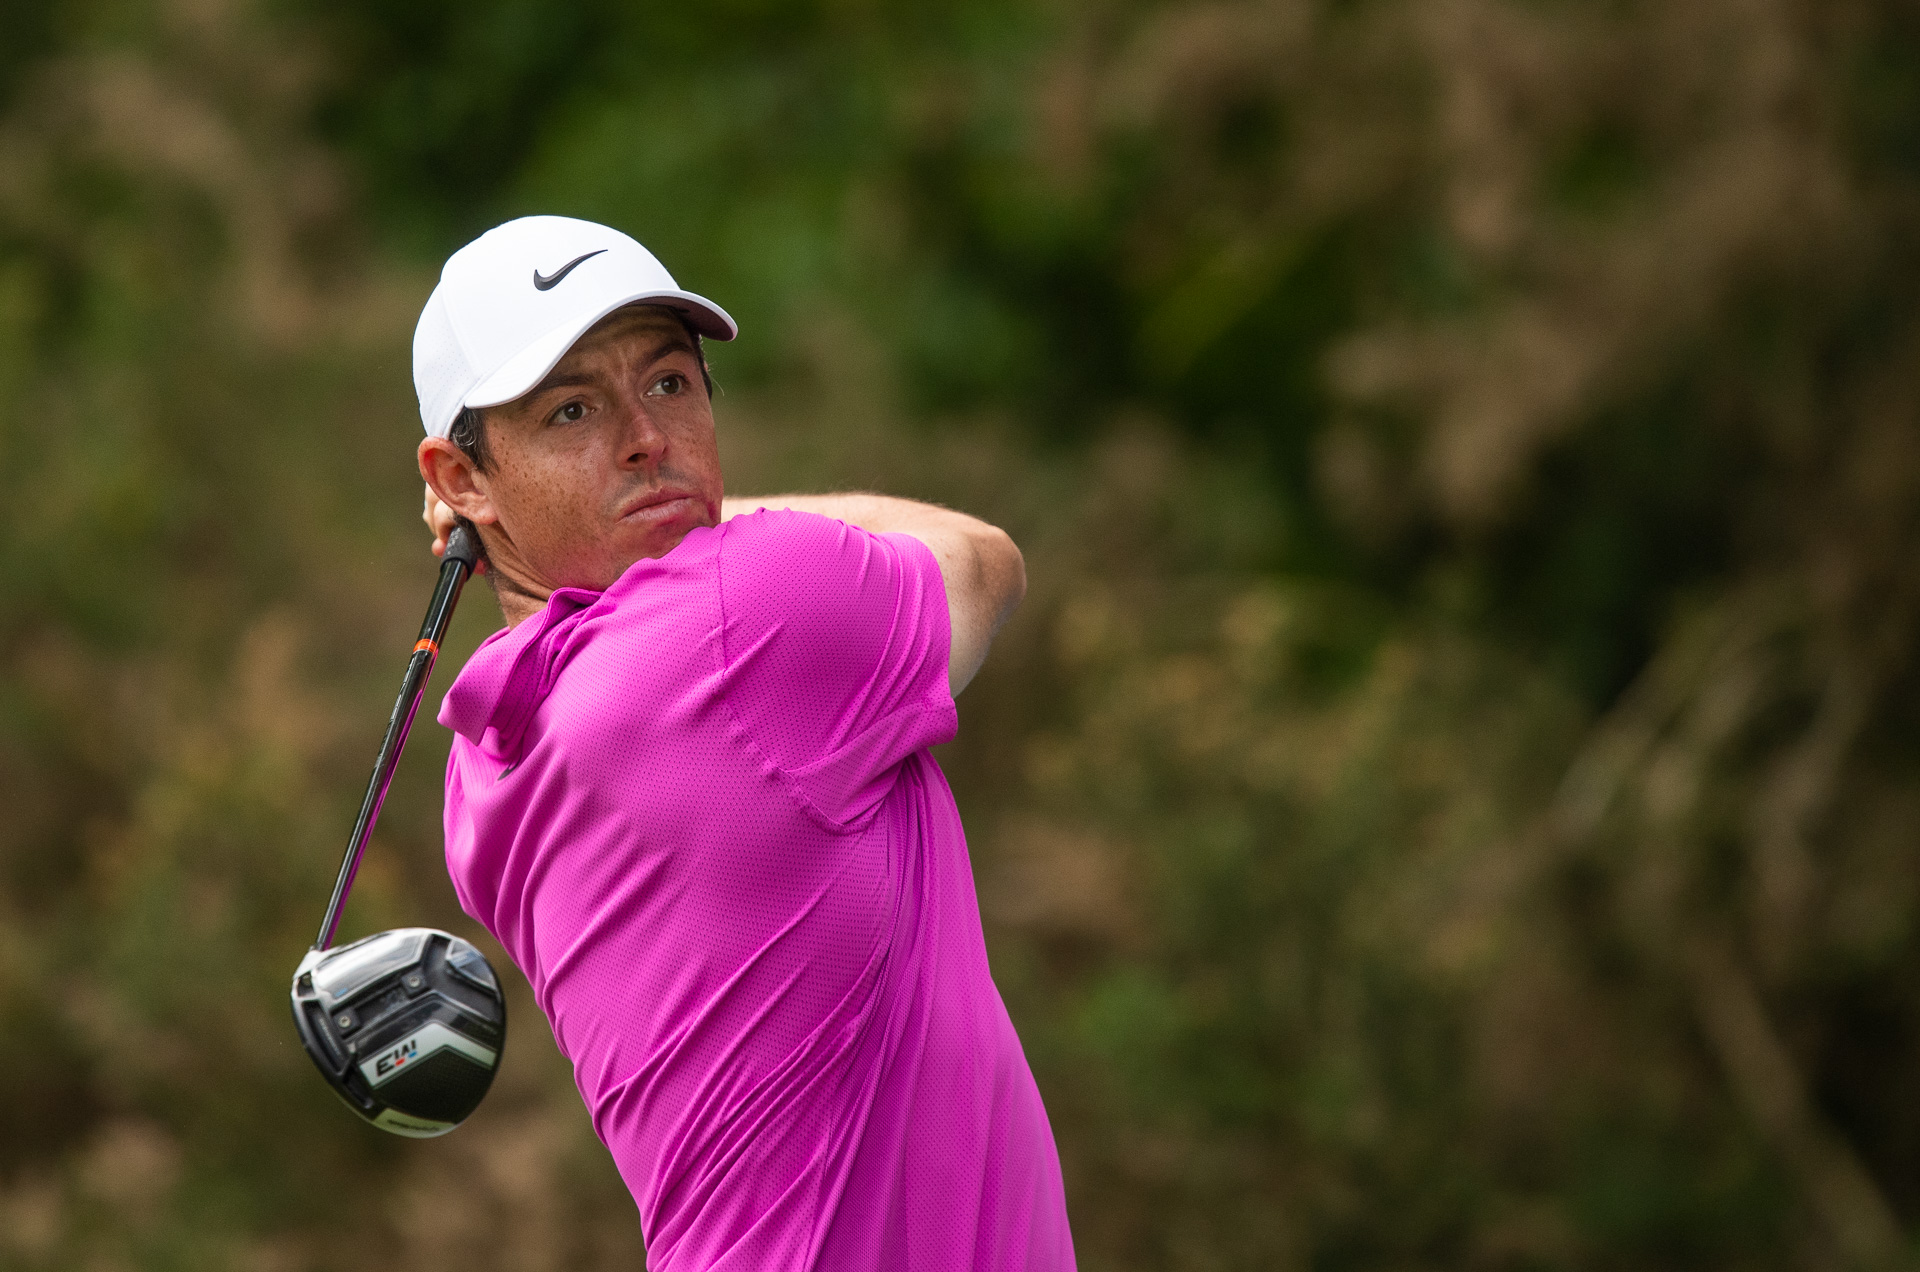 Rory was immaculate from the tee, a treat for golf course photography.